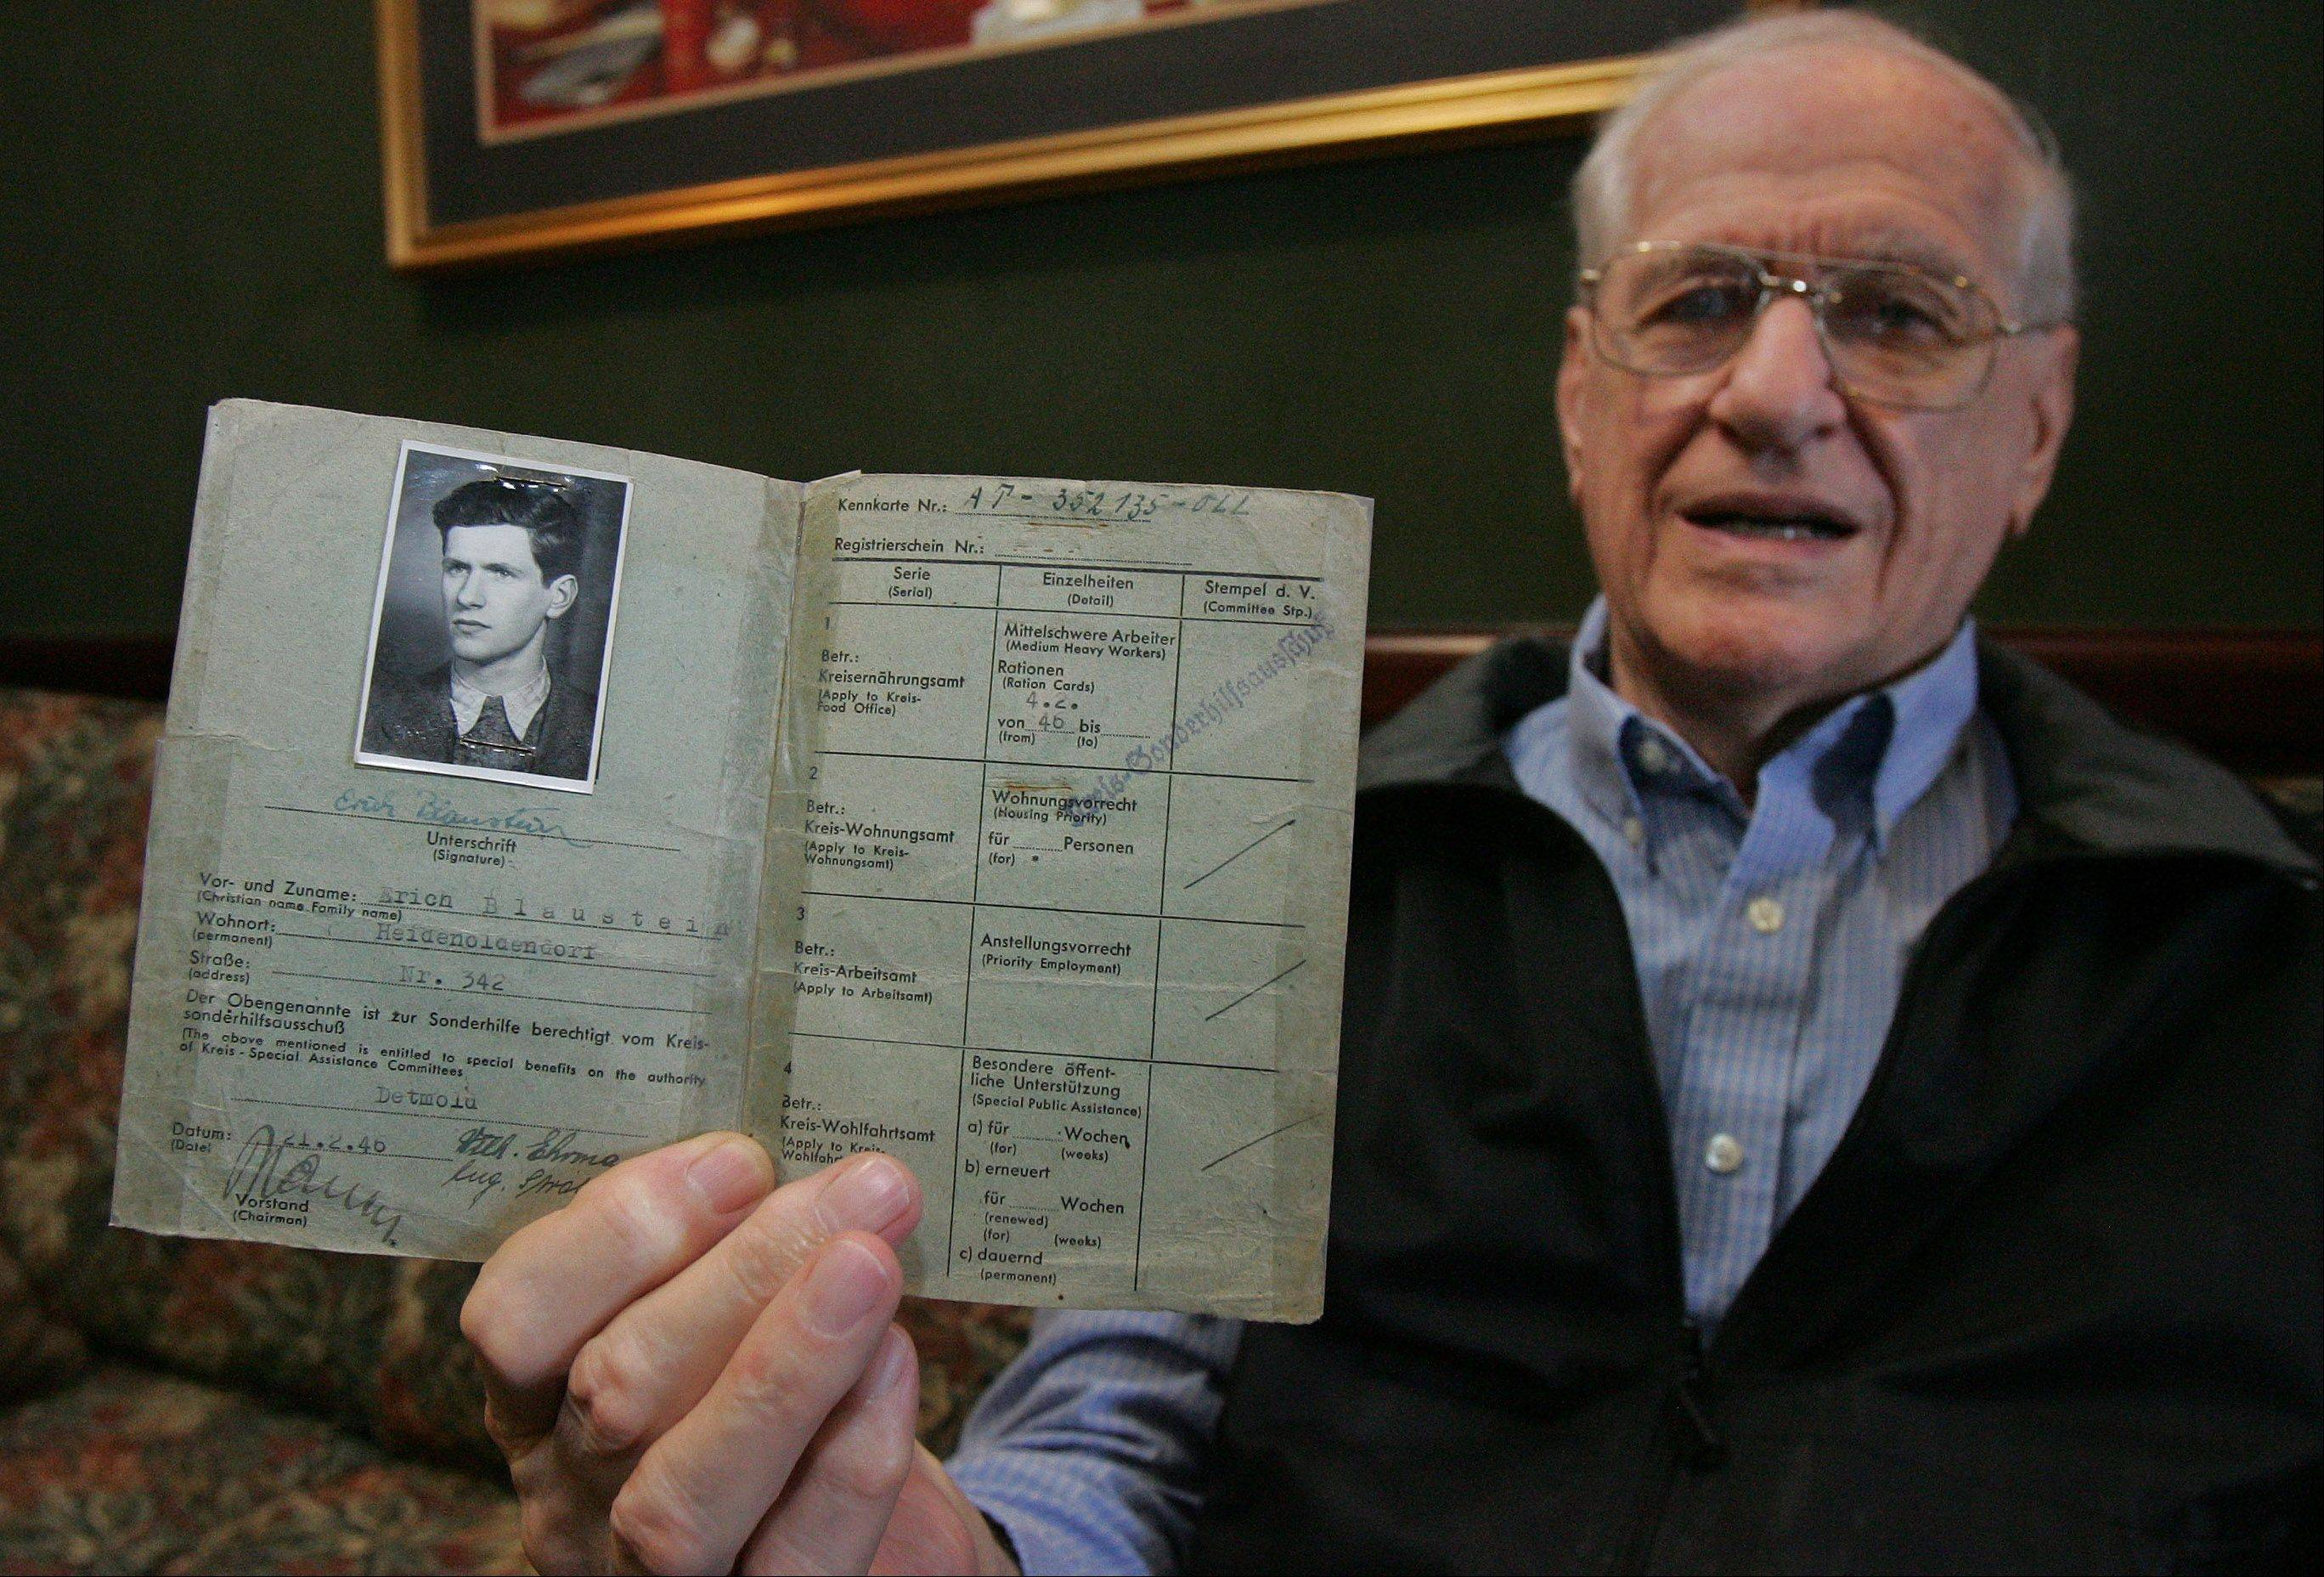 Holocaust survivor Eric Blaustein of Vernon Hills shows his German identification papers as he discusses his arrest at 17 by the Nazis and his time in Buchenwald prison camp during World War II. Blaustein will speak today at Harper College about his ordeal.